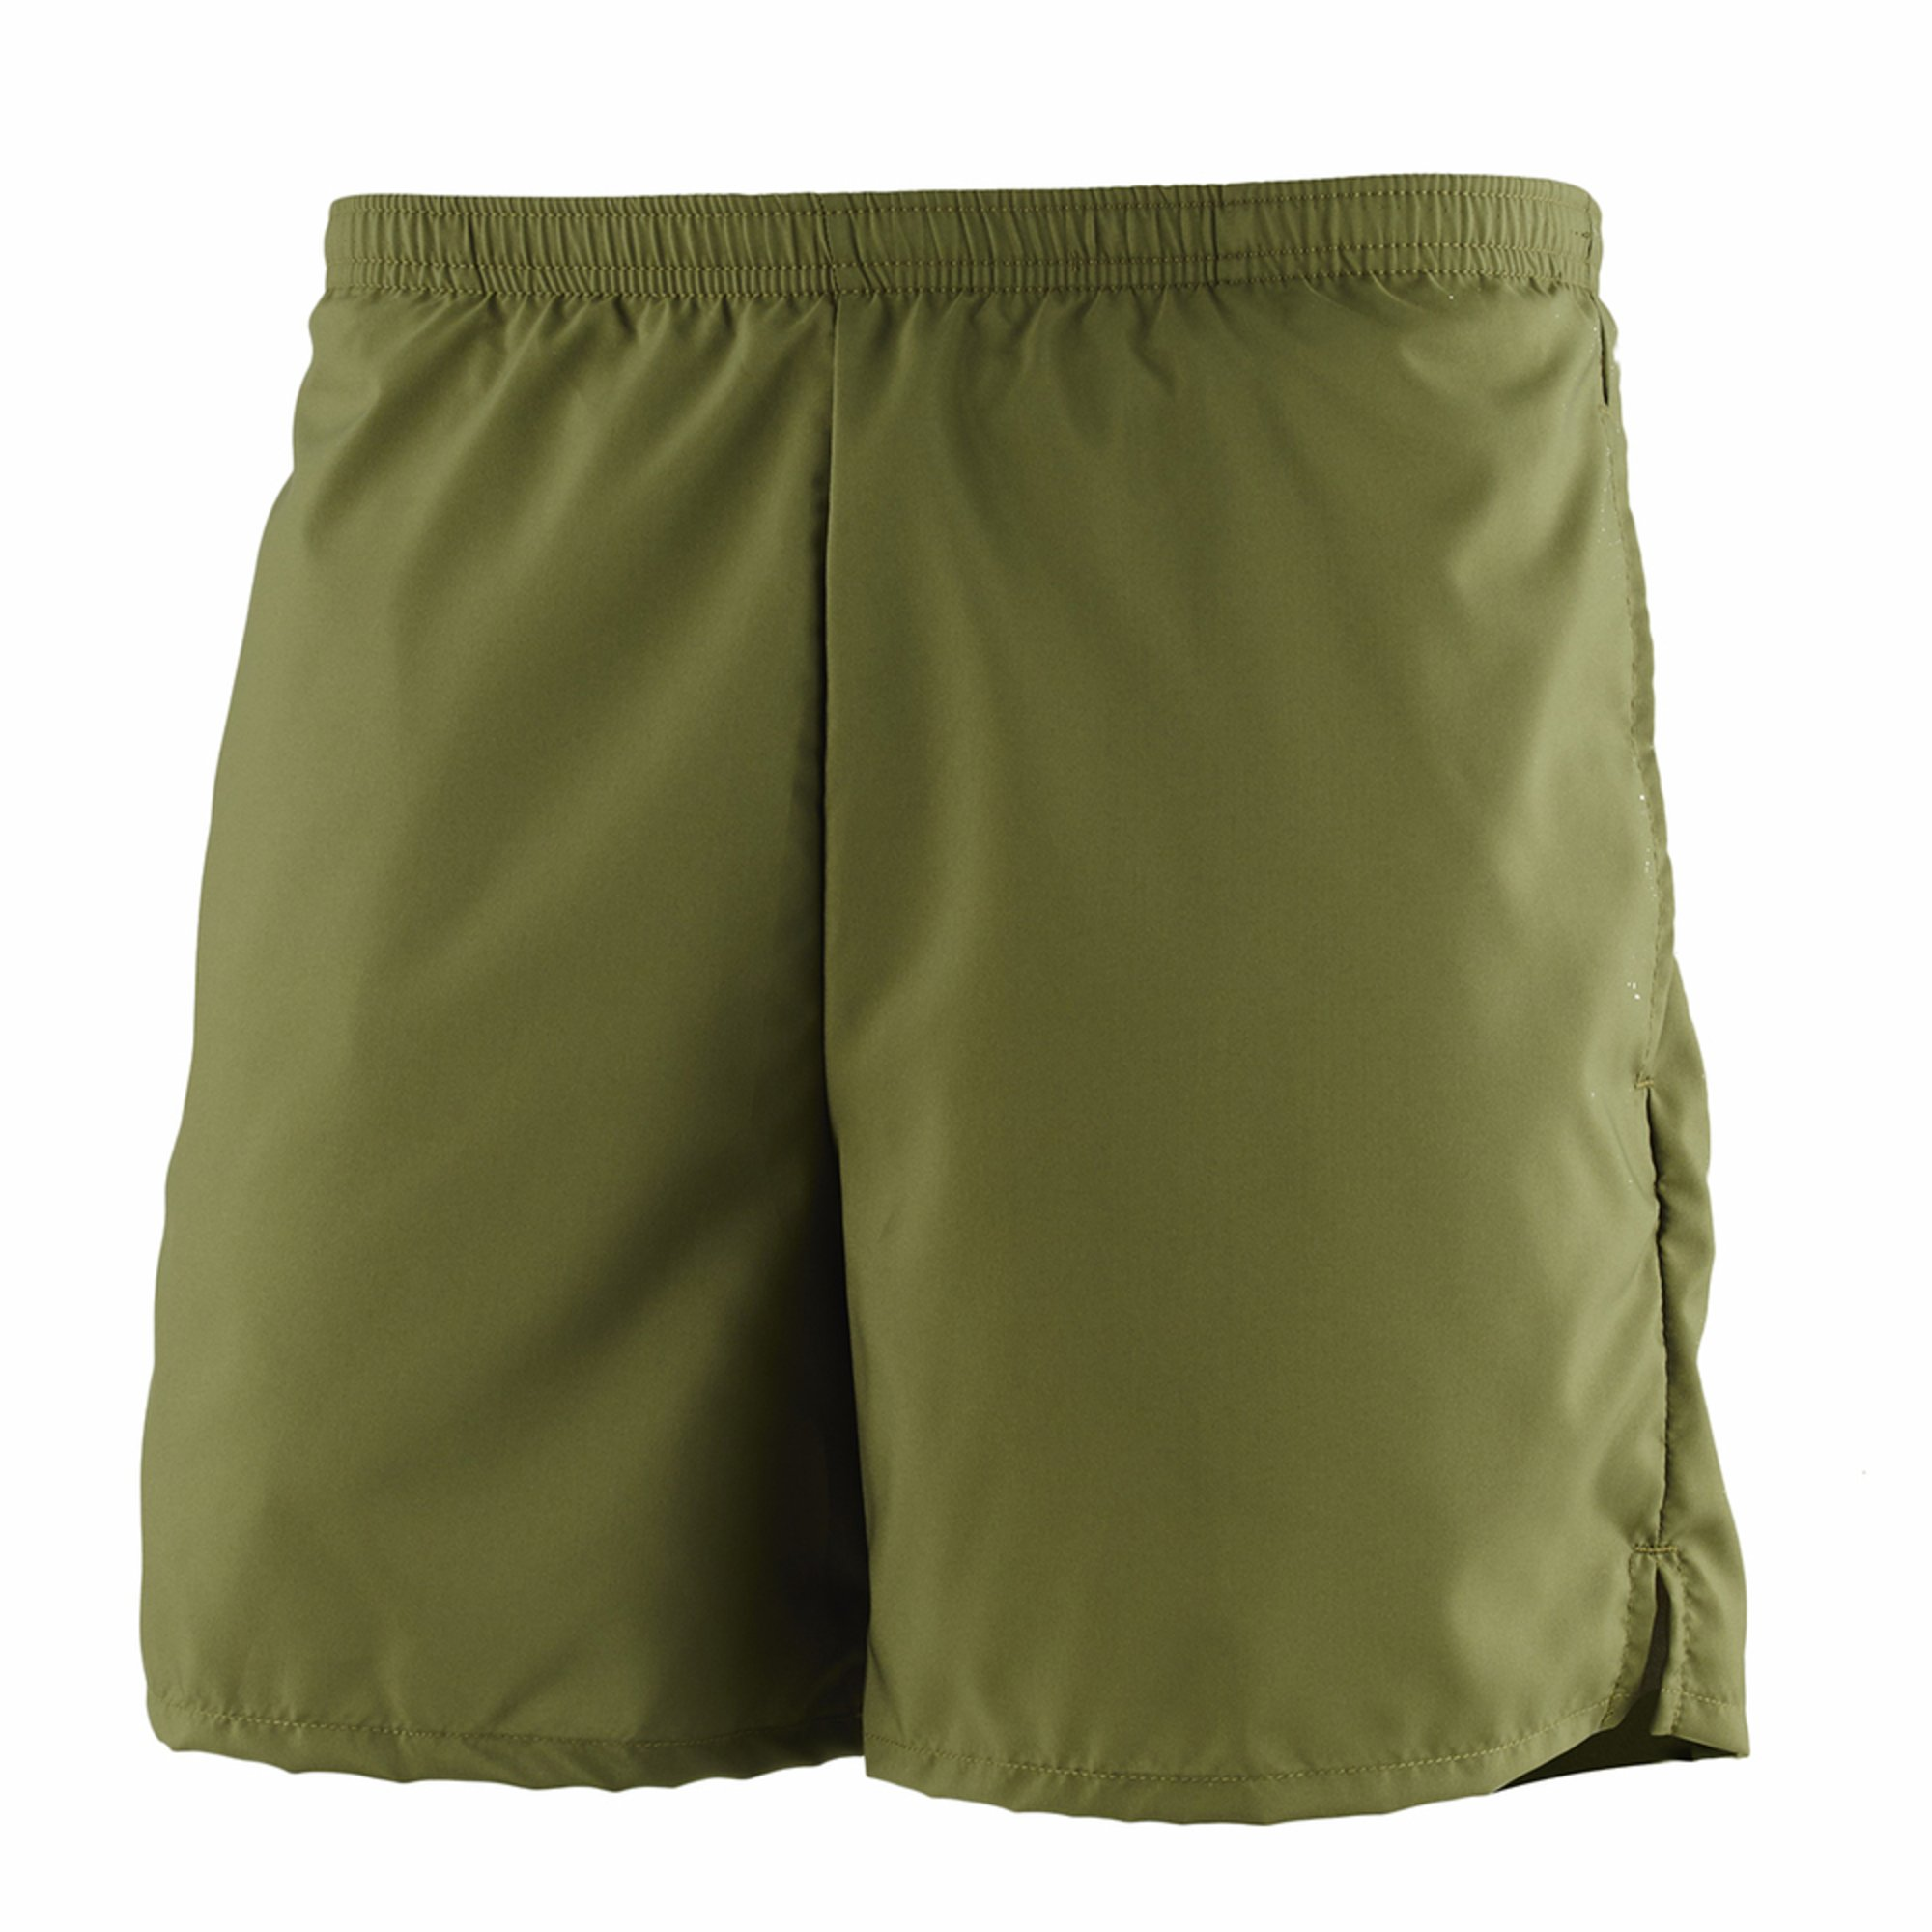 ARMY PTU Physical Training Uniform Shorts